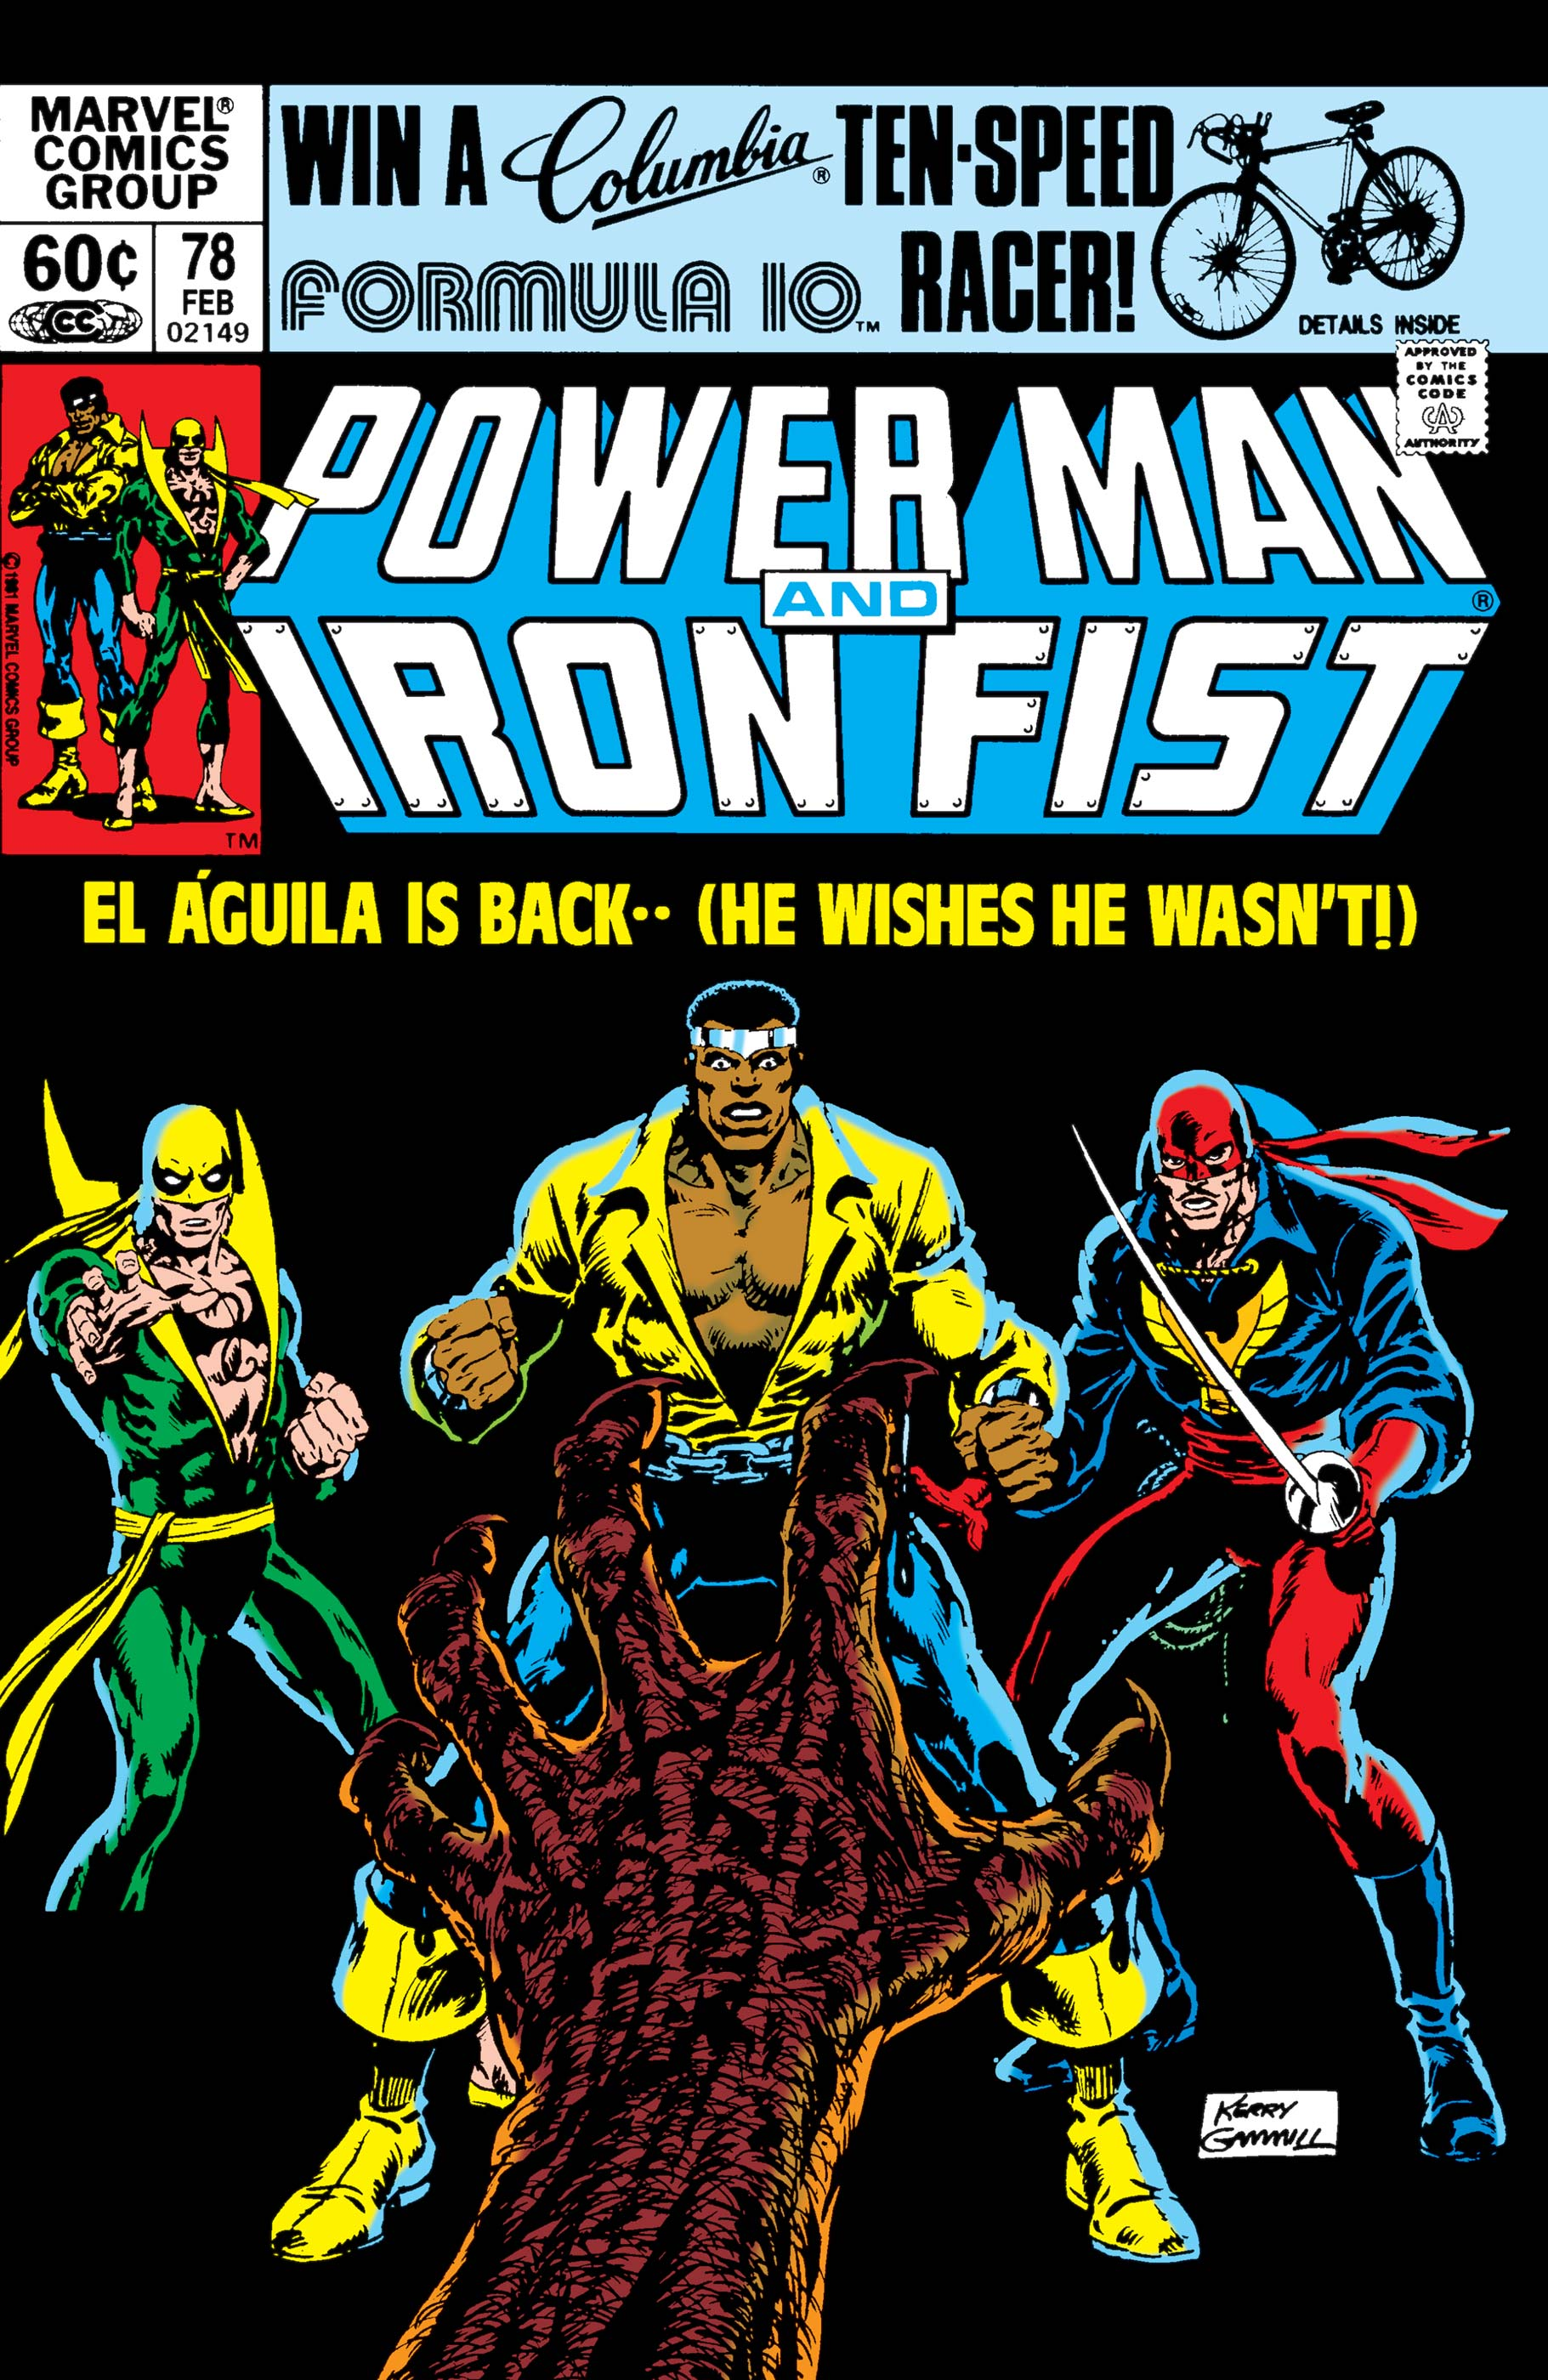 Power Man and Iron Fist (1978) #78